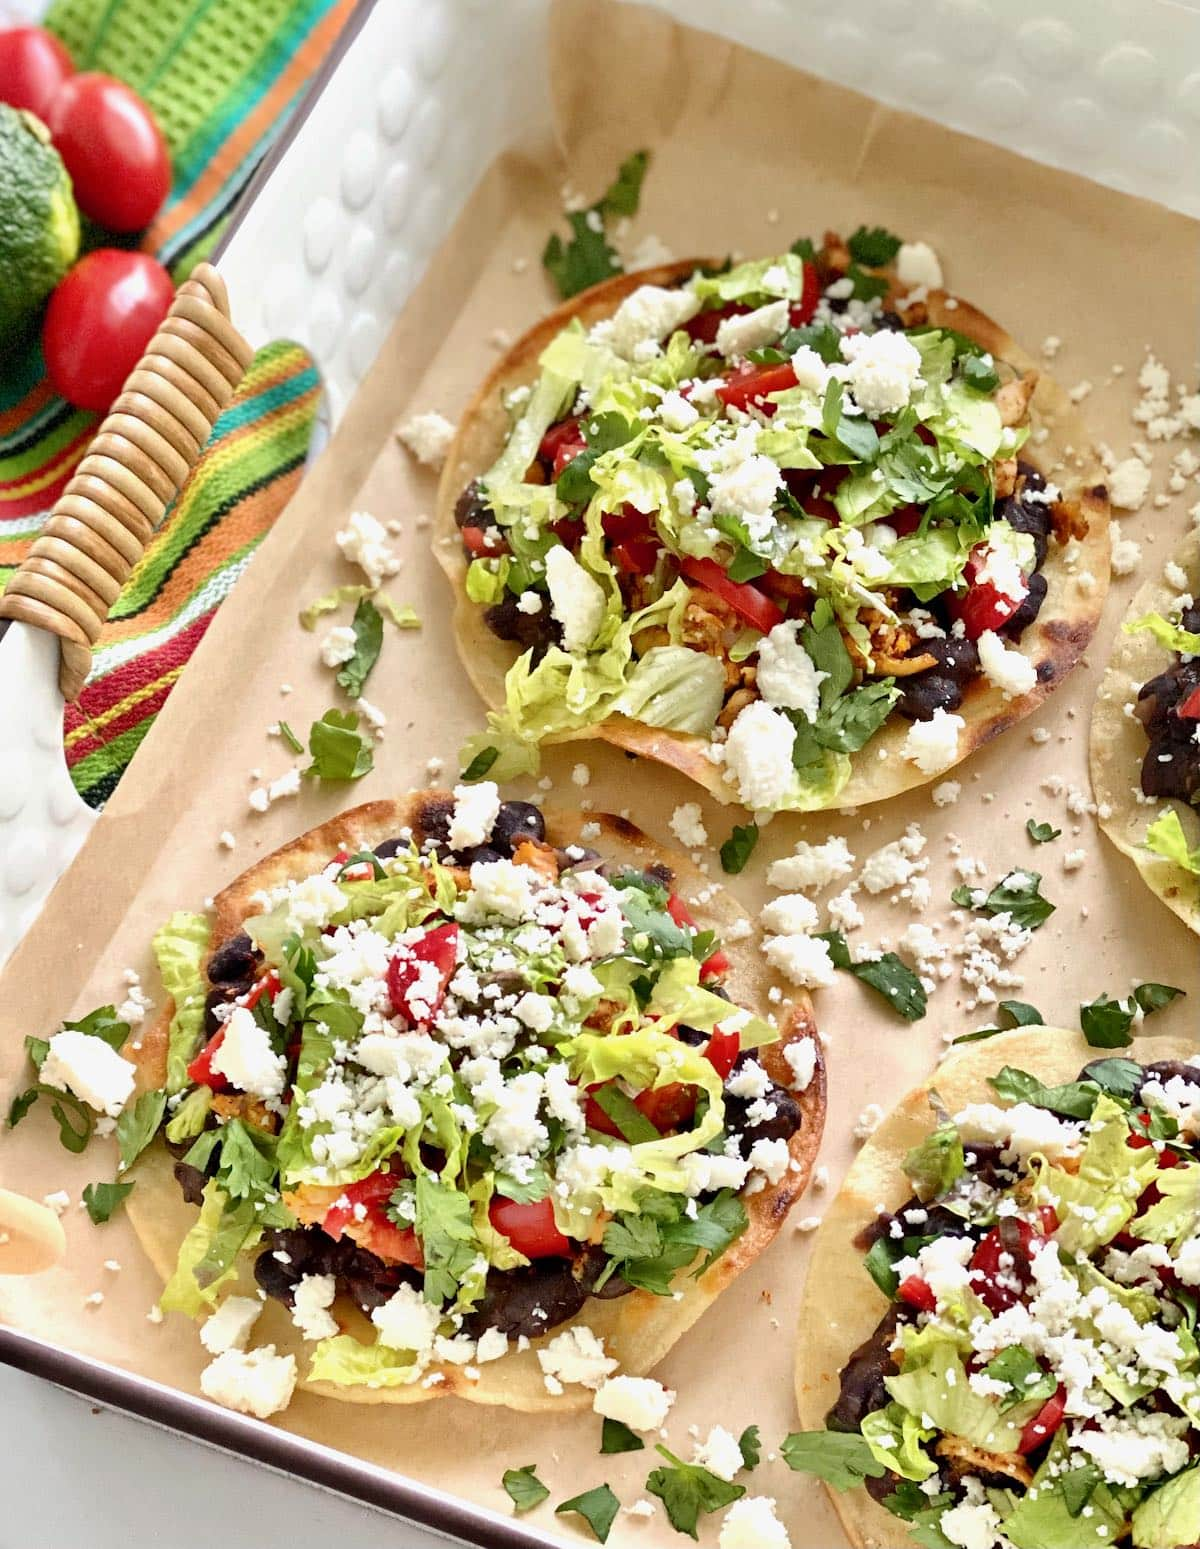 corn tortillas smothered in toppings.